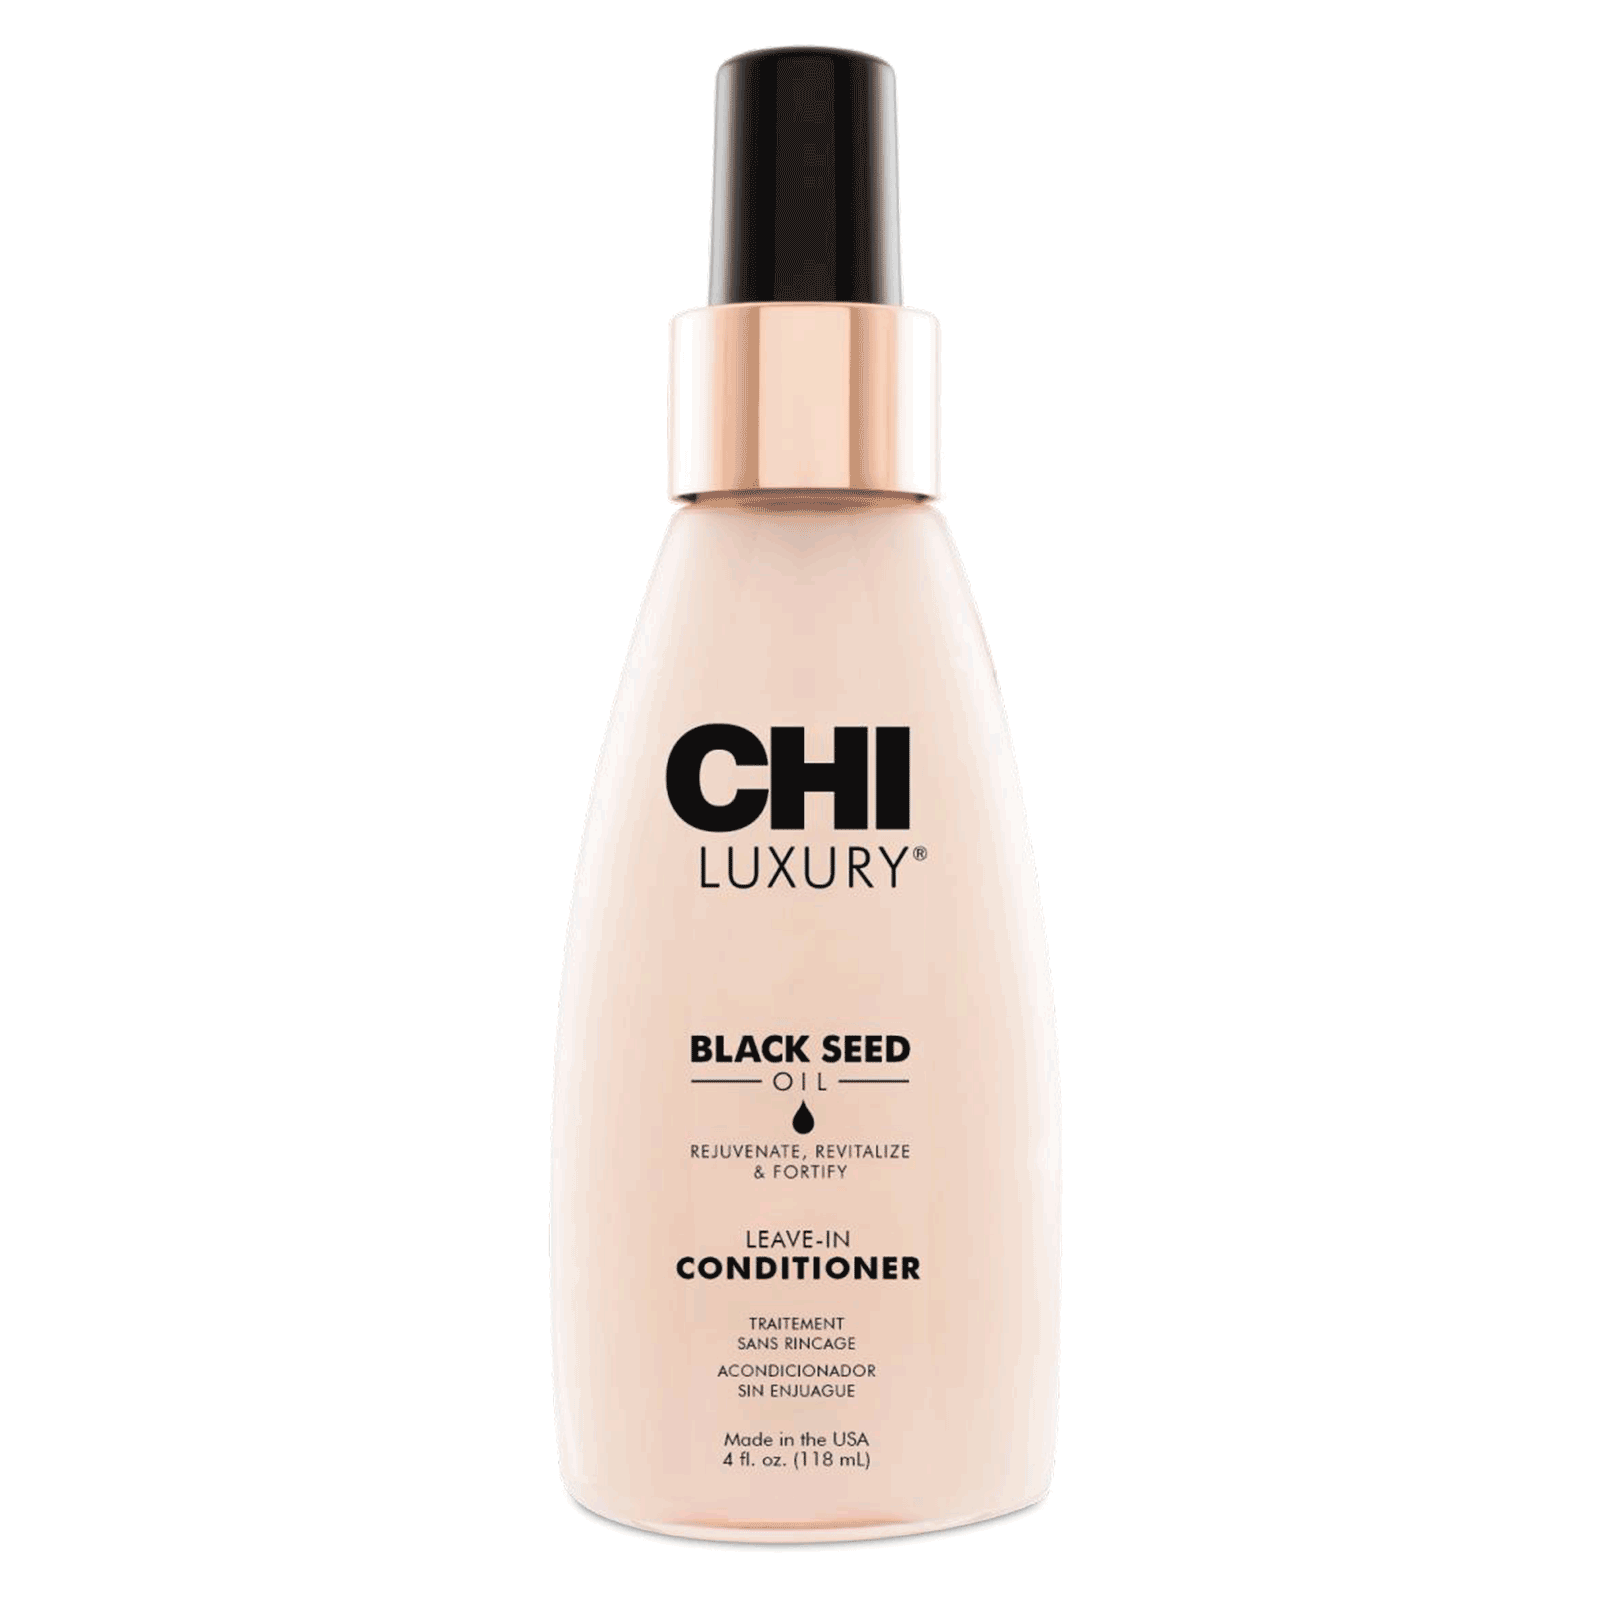 CHI Luxury - Black Seed Oil Leave-In Conditioner